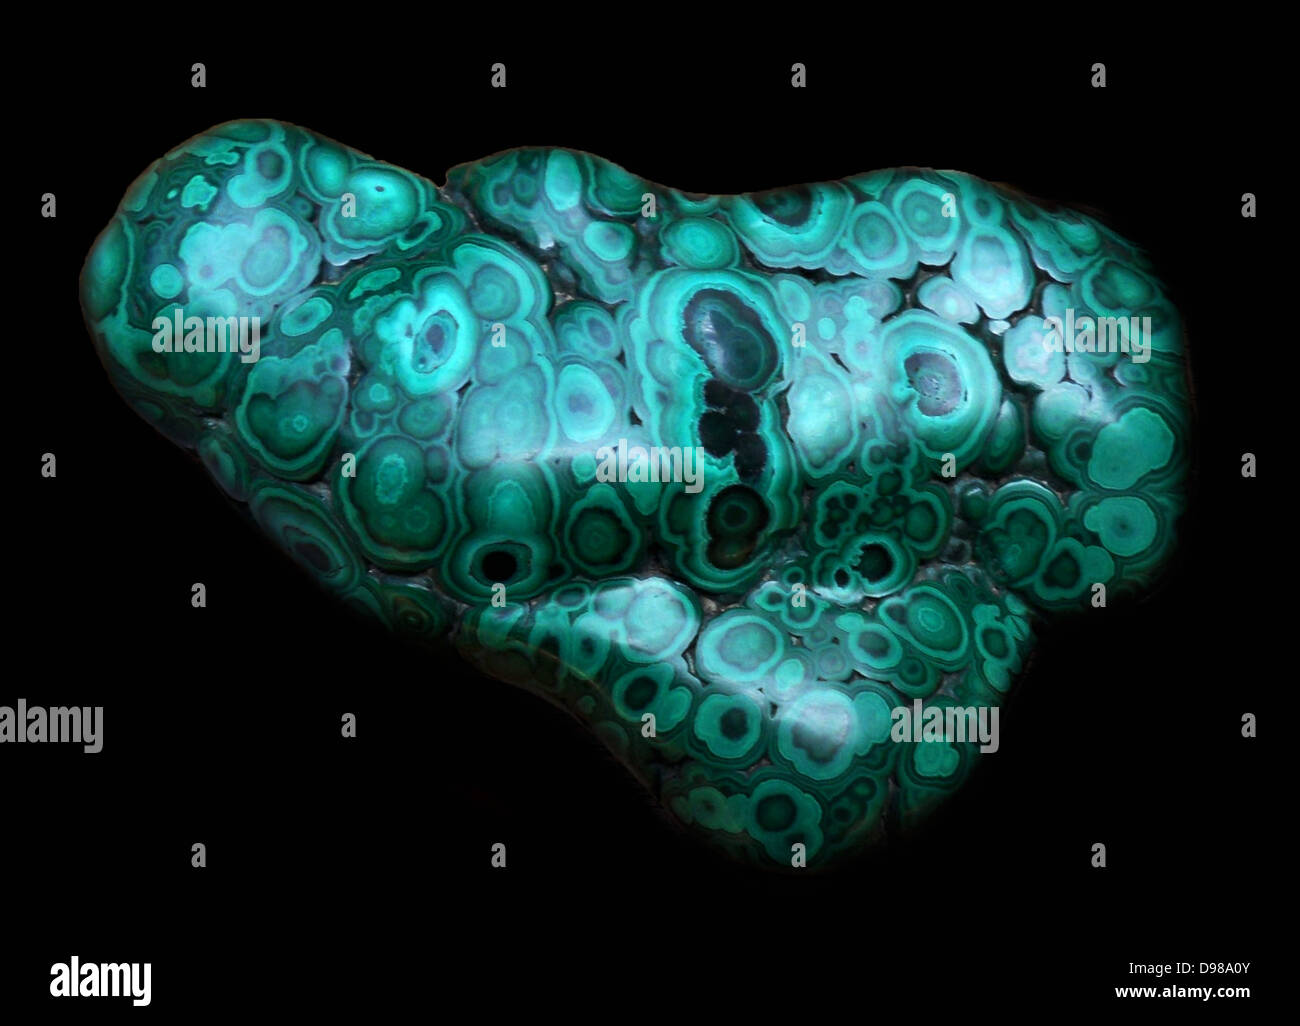 The Copper mineral malachite, from the Democratic Republic of the Congo - Stock Image